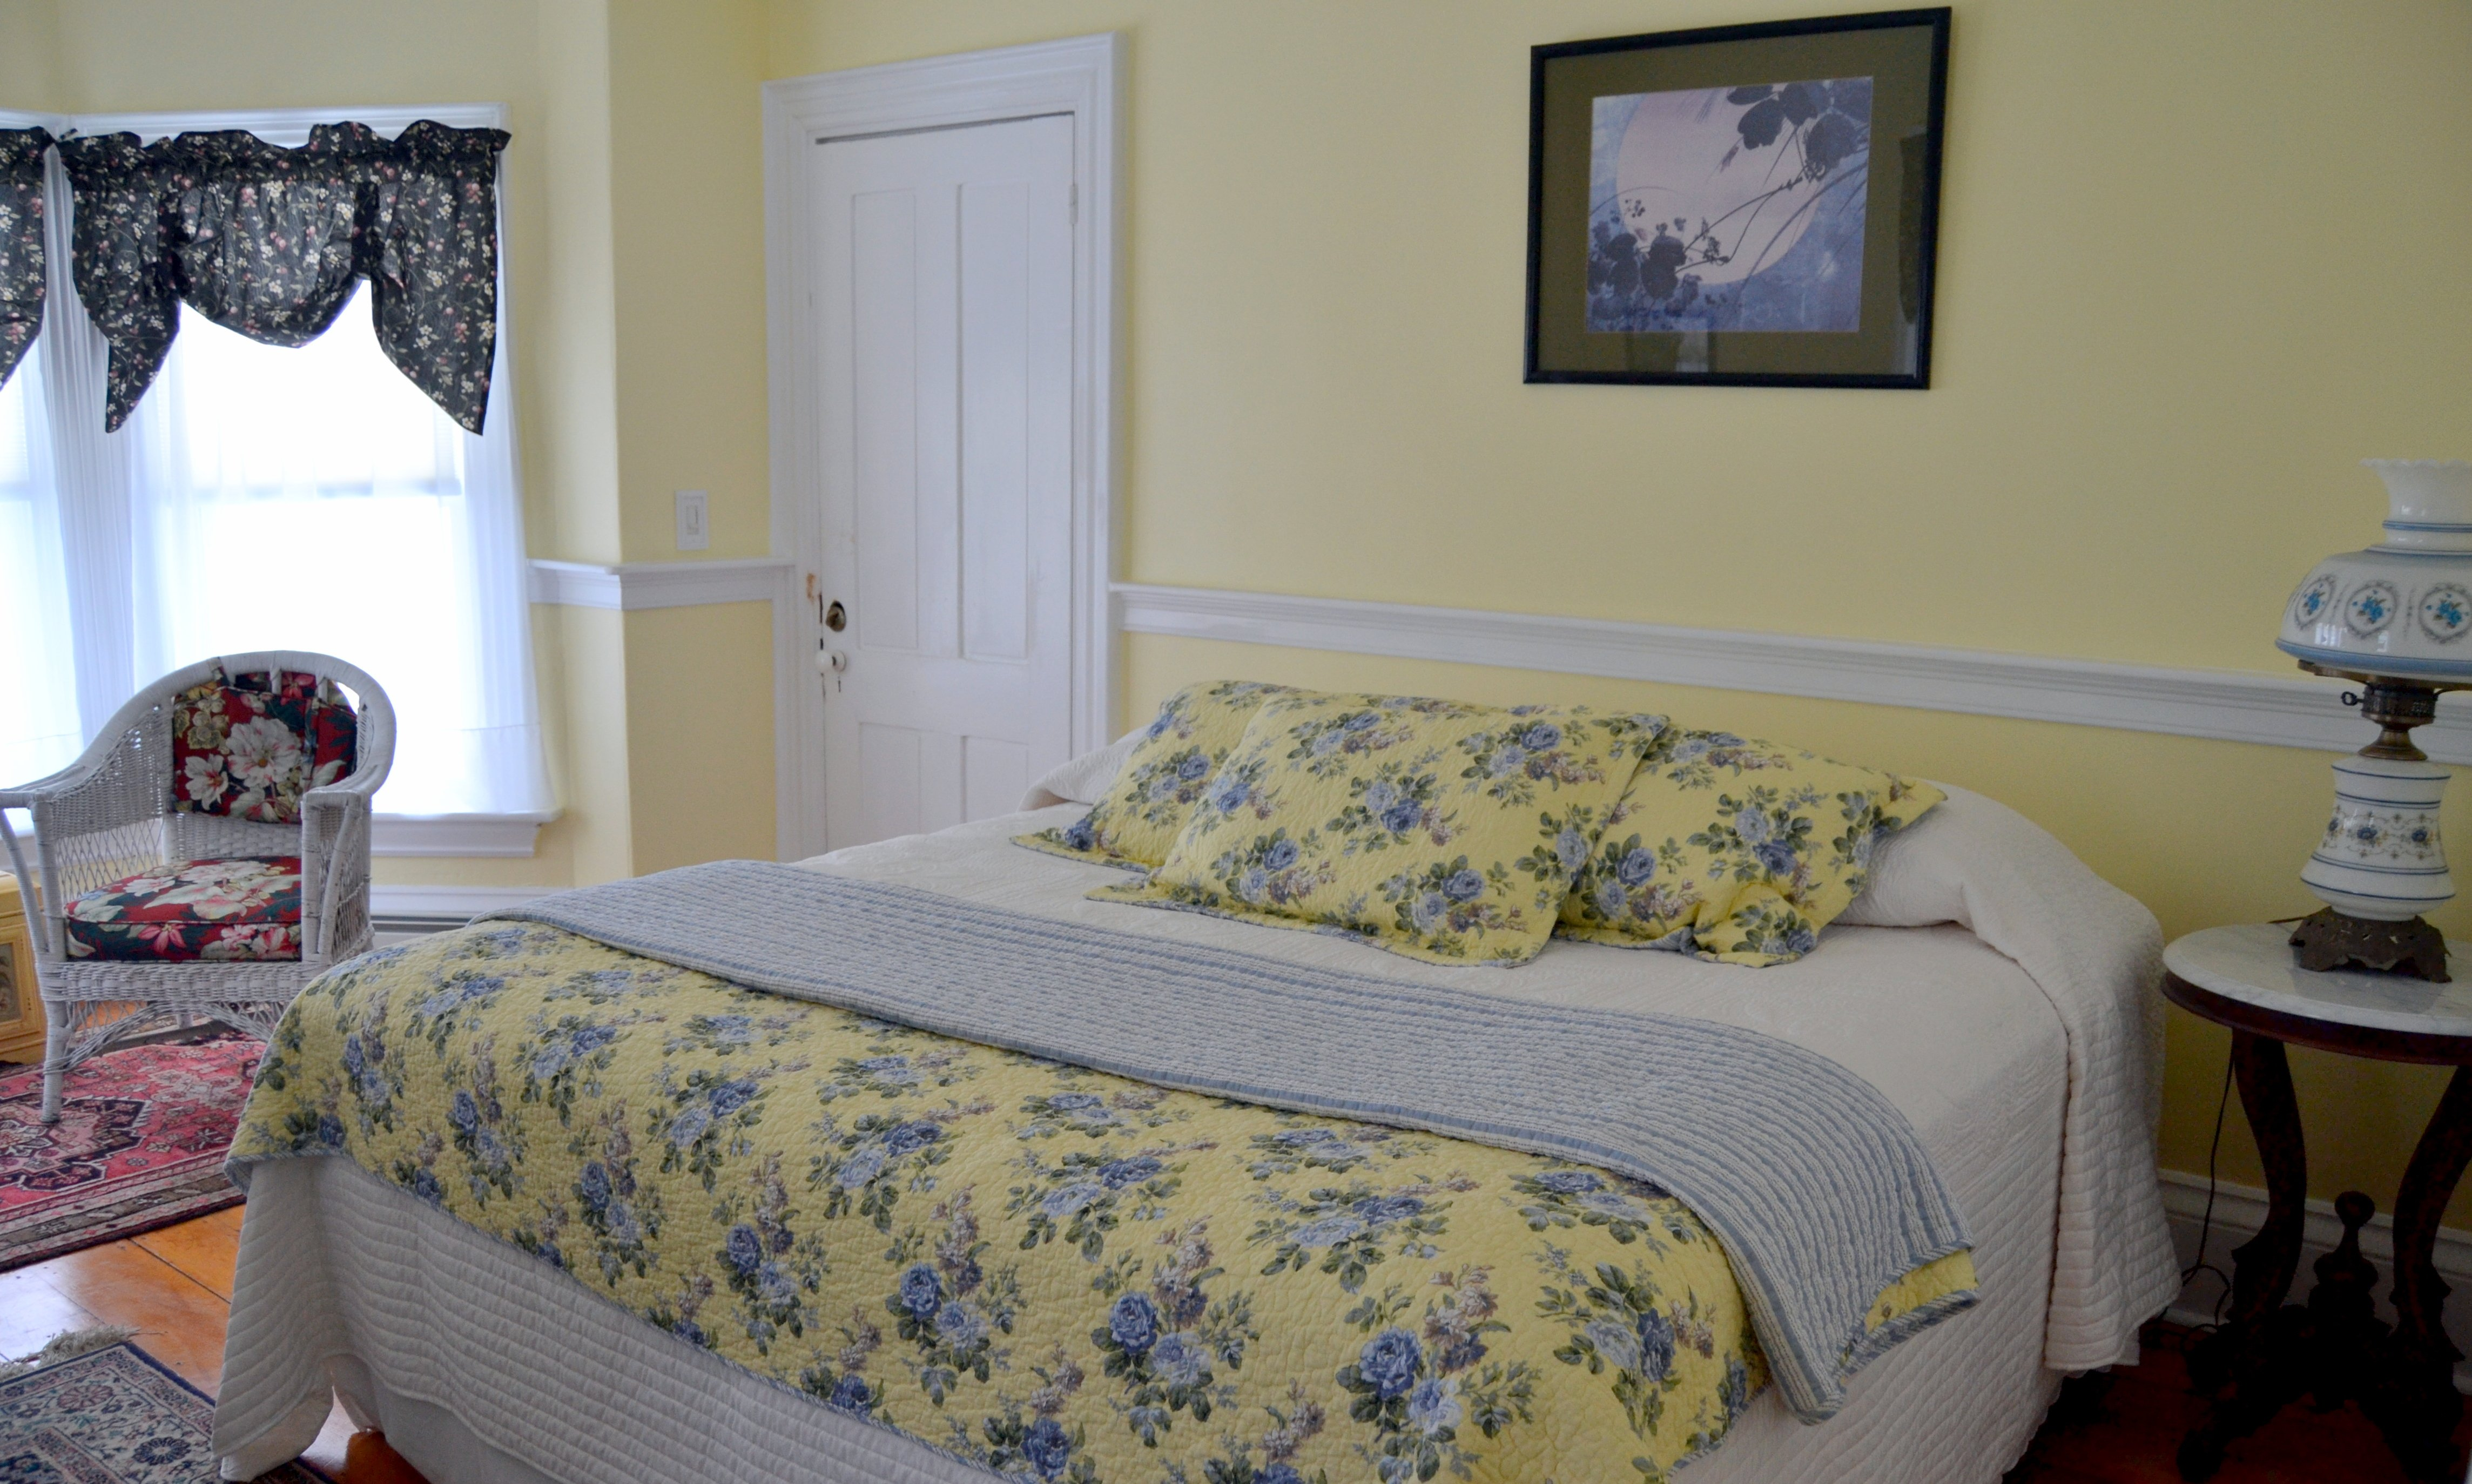 Southside Room, king size bed, TV, air conditioned, private bath with shower, sitting area, full hot breakfast with continental options.